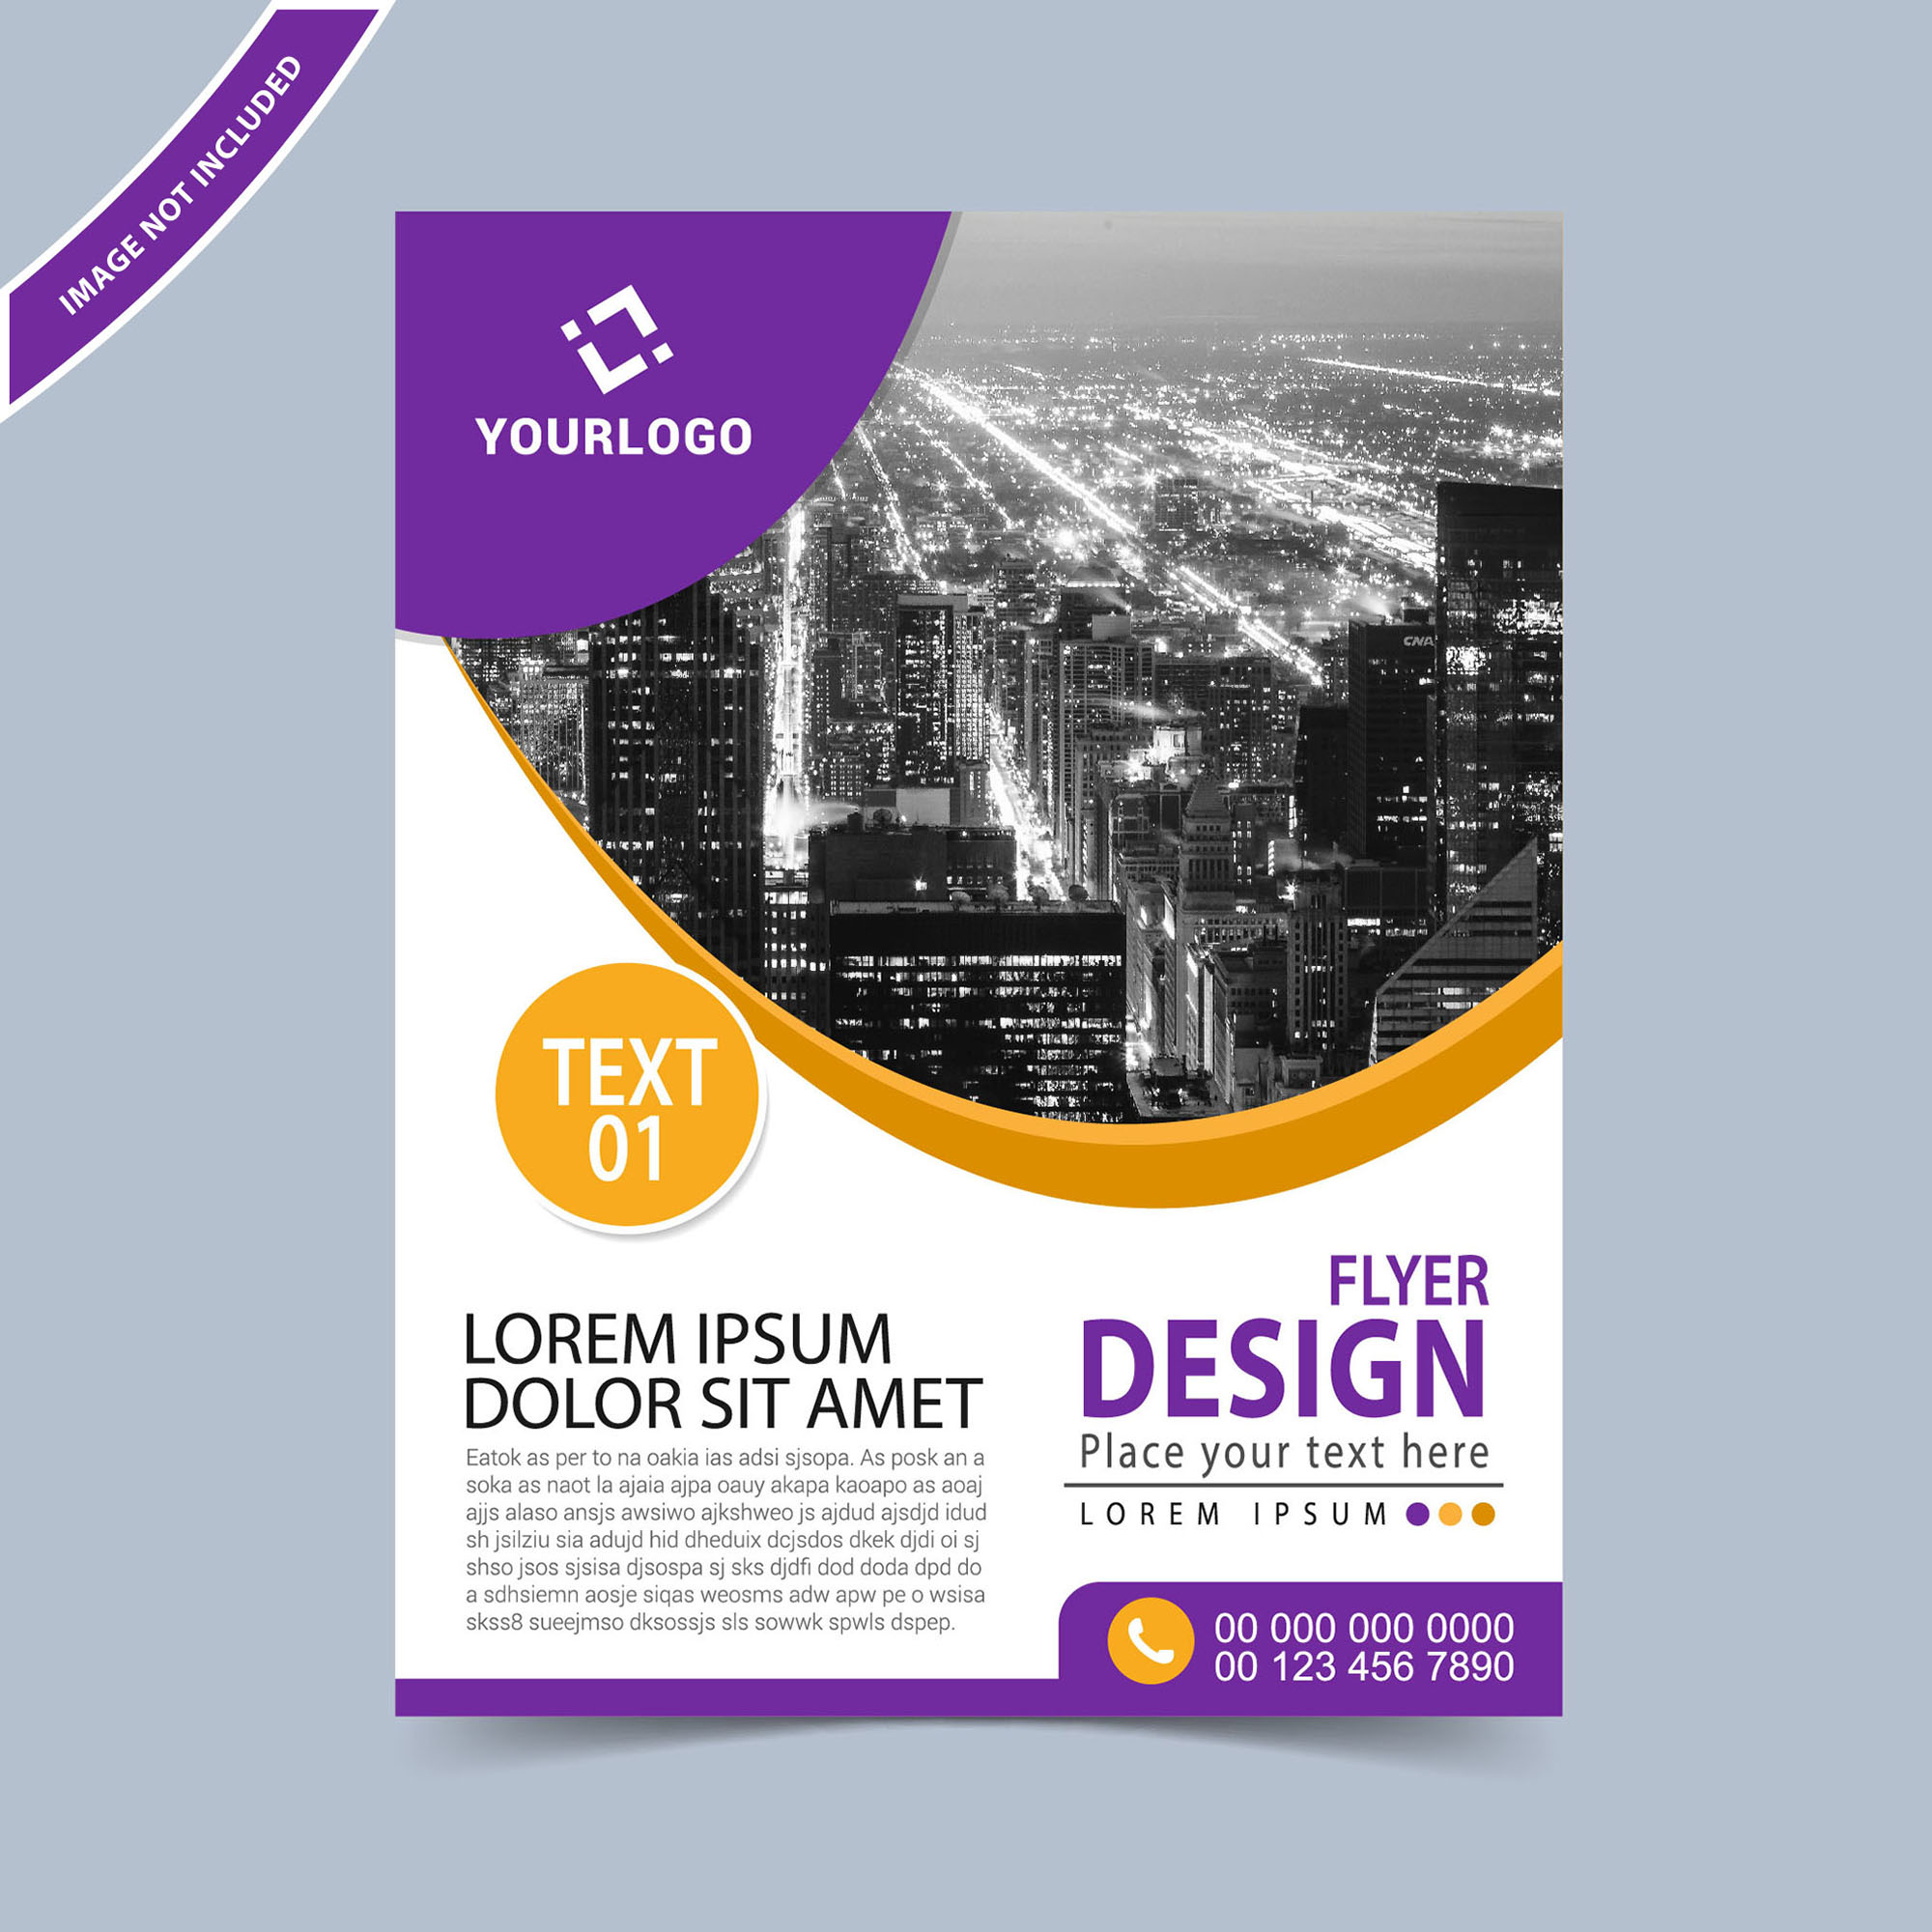 flyers layout template free - business flyer design template free download